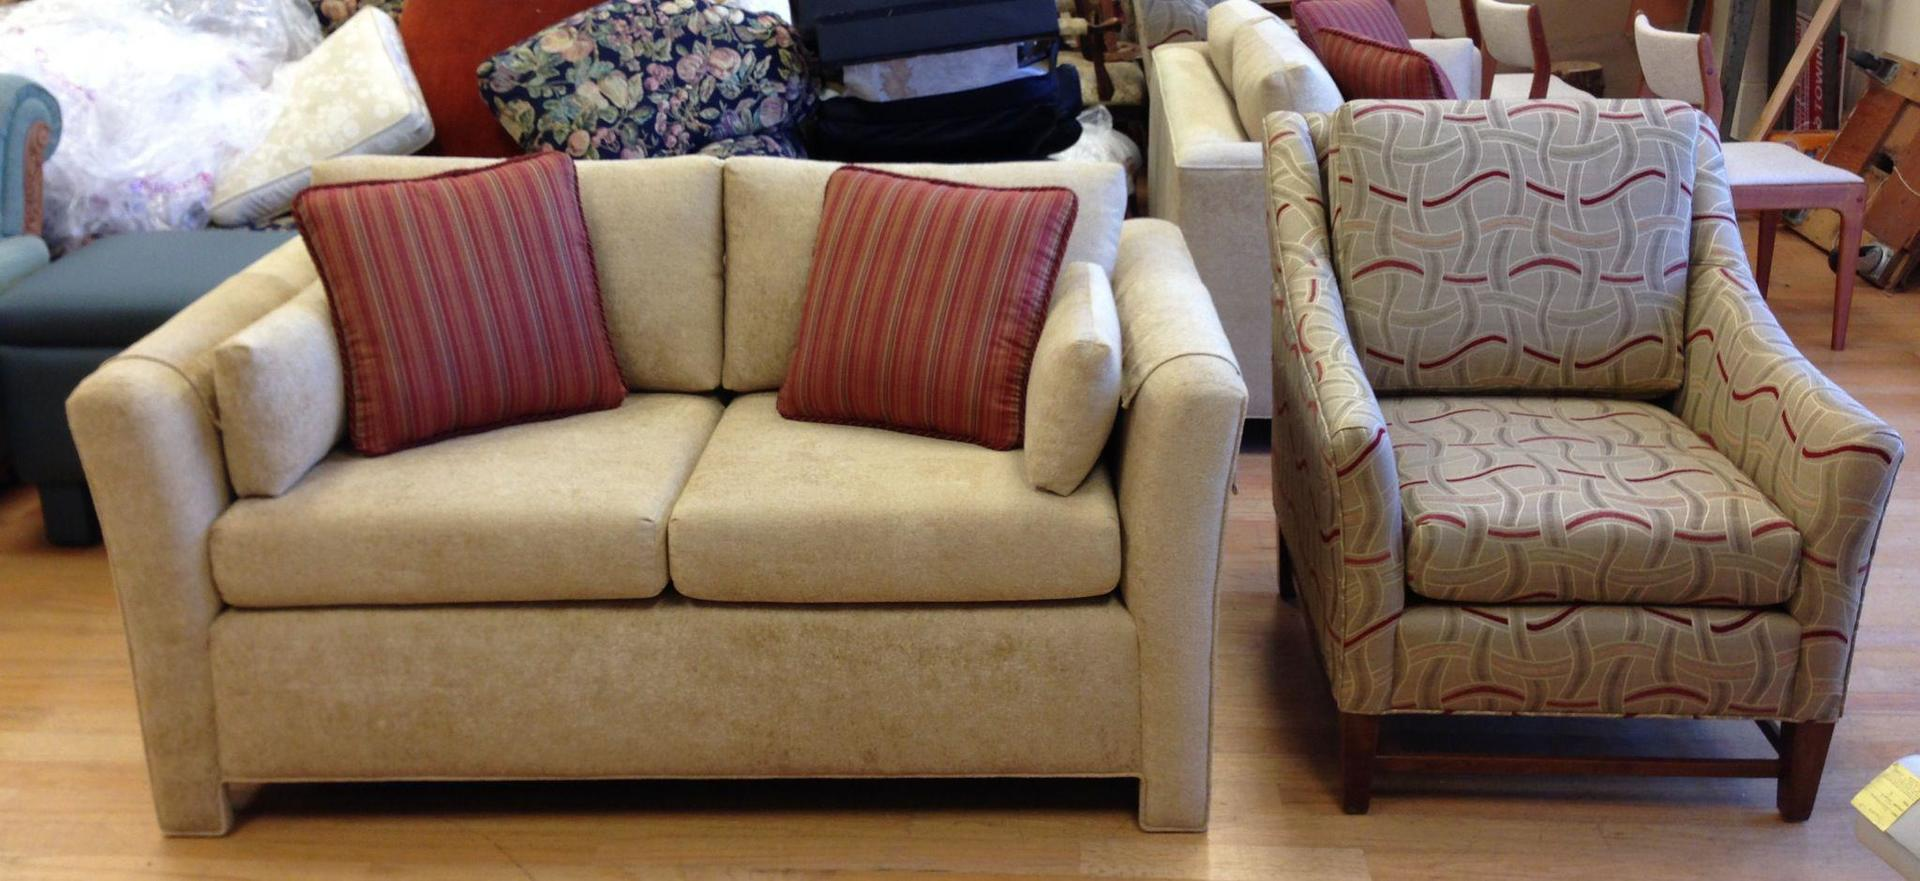 Custom couch and chair